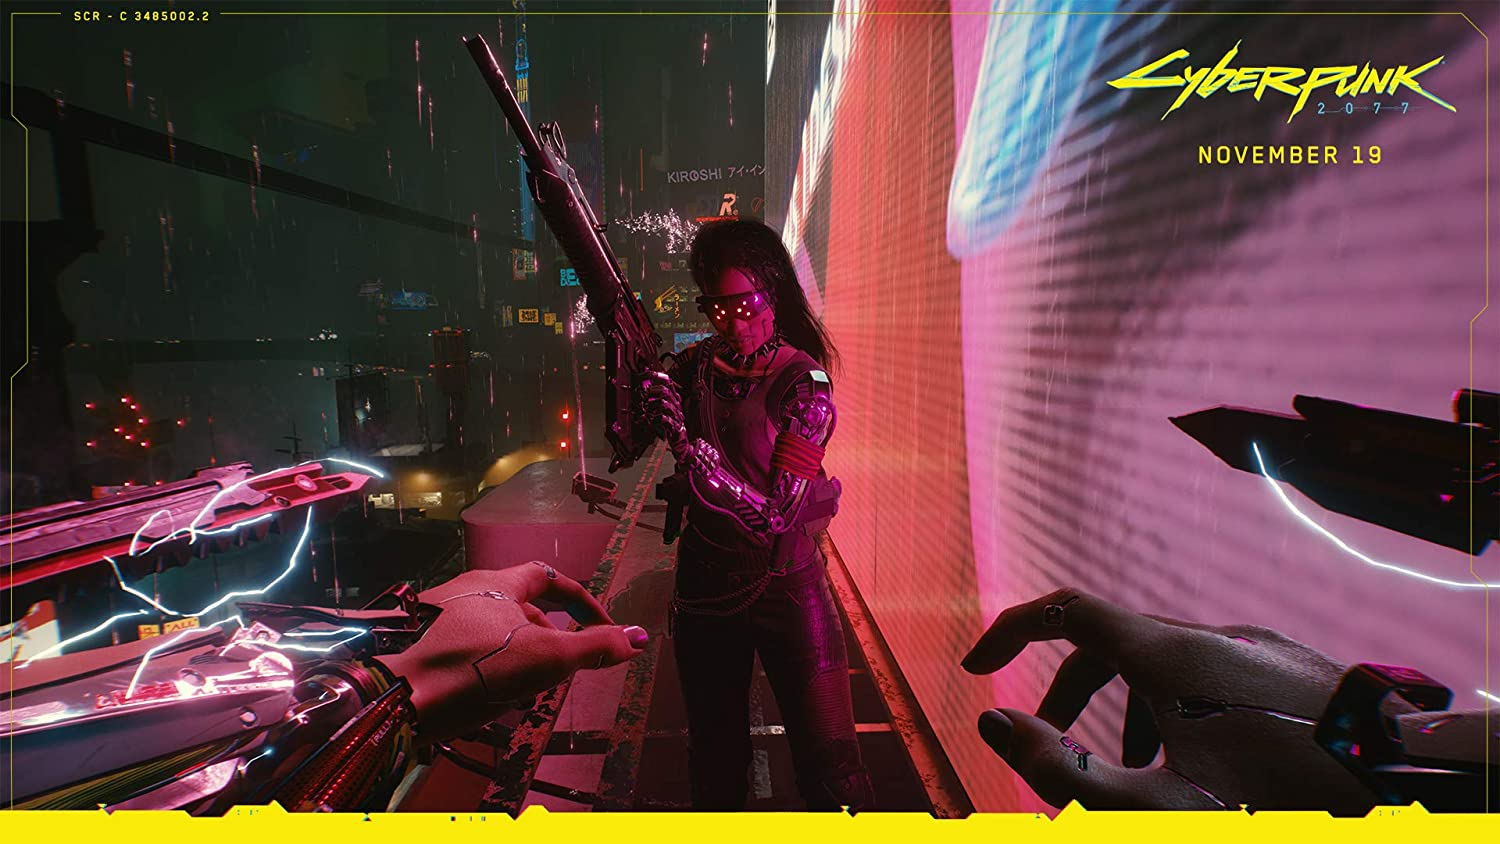 Cyberpunk 2077 screenshot featuring a player character with blades in their arms about to interact with a lady wielding a gun.